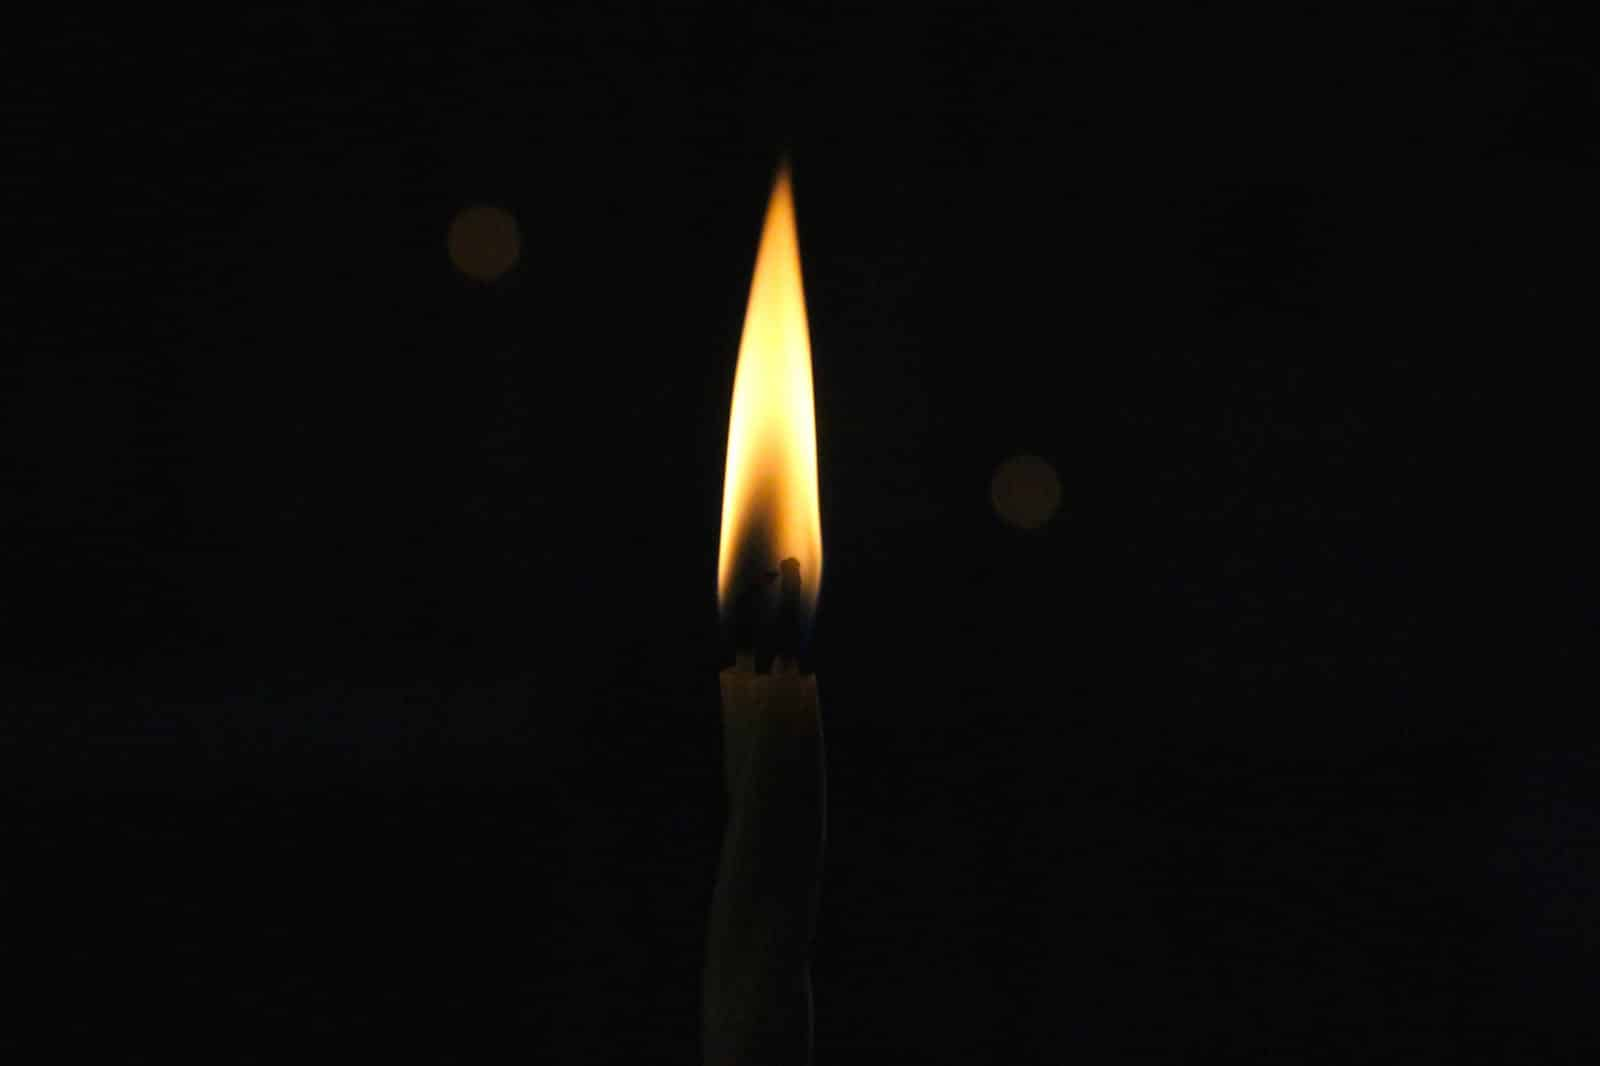 Long-burning 100% Beeswax artisan candles from St. Andrews of Lake Almanor